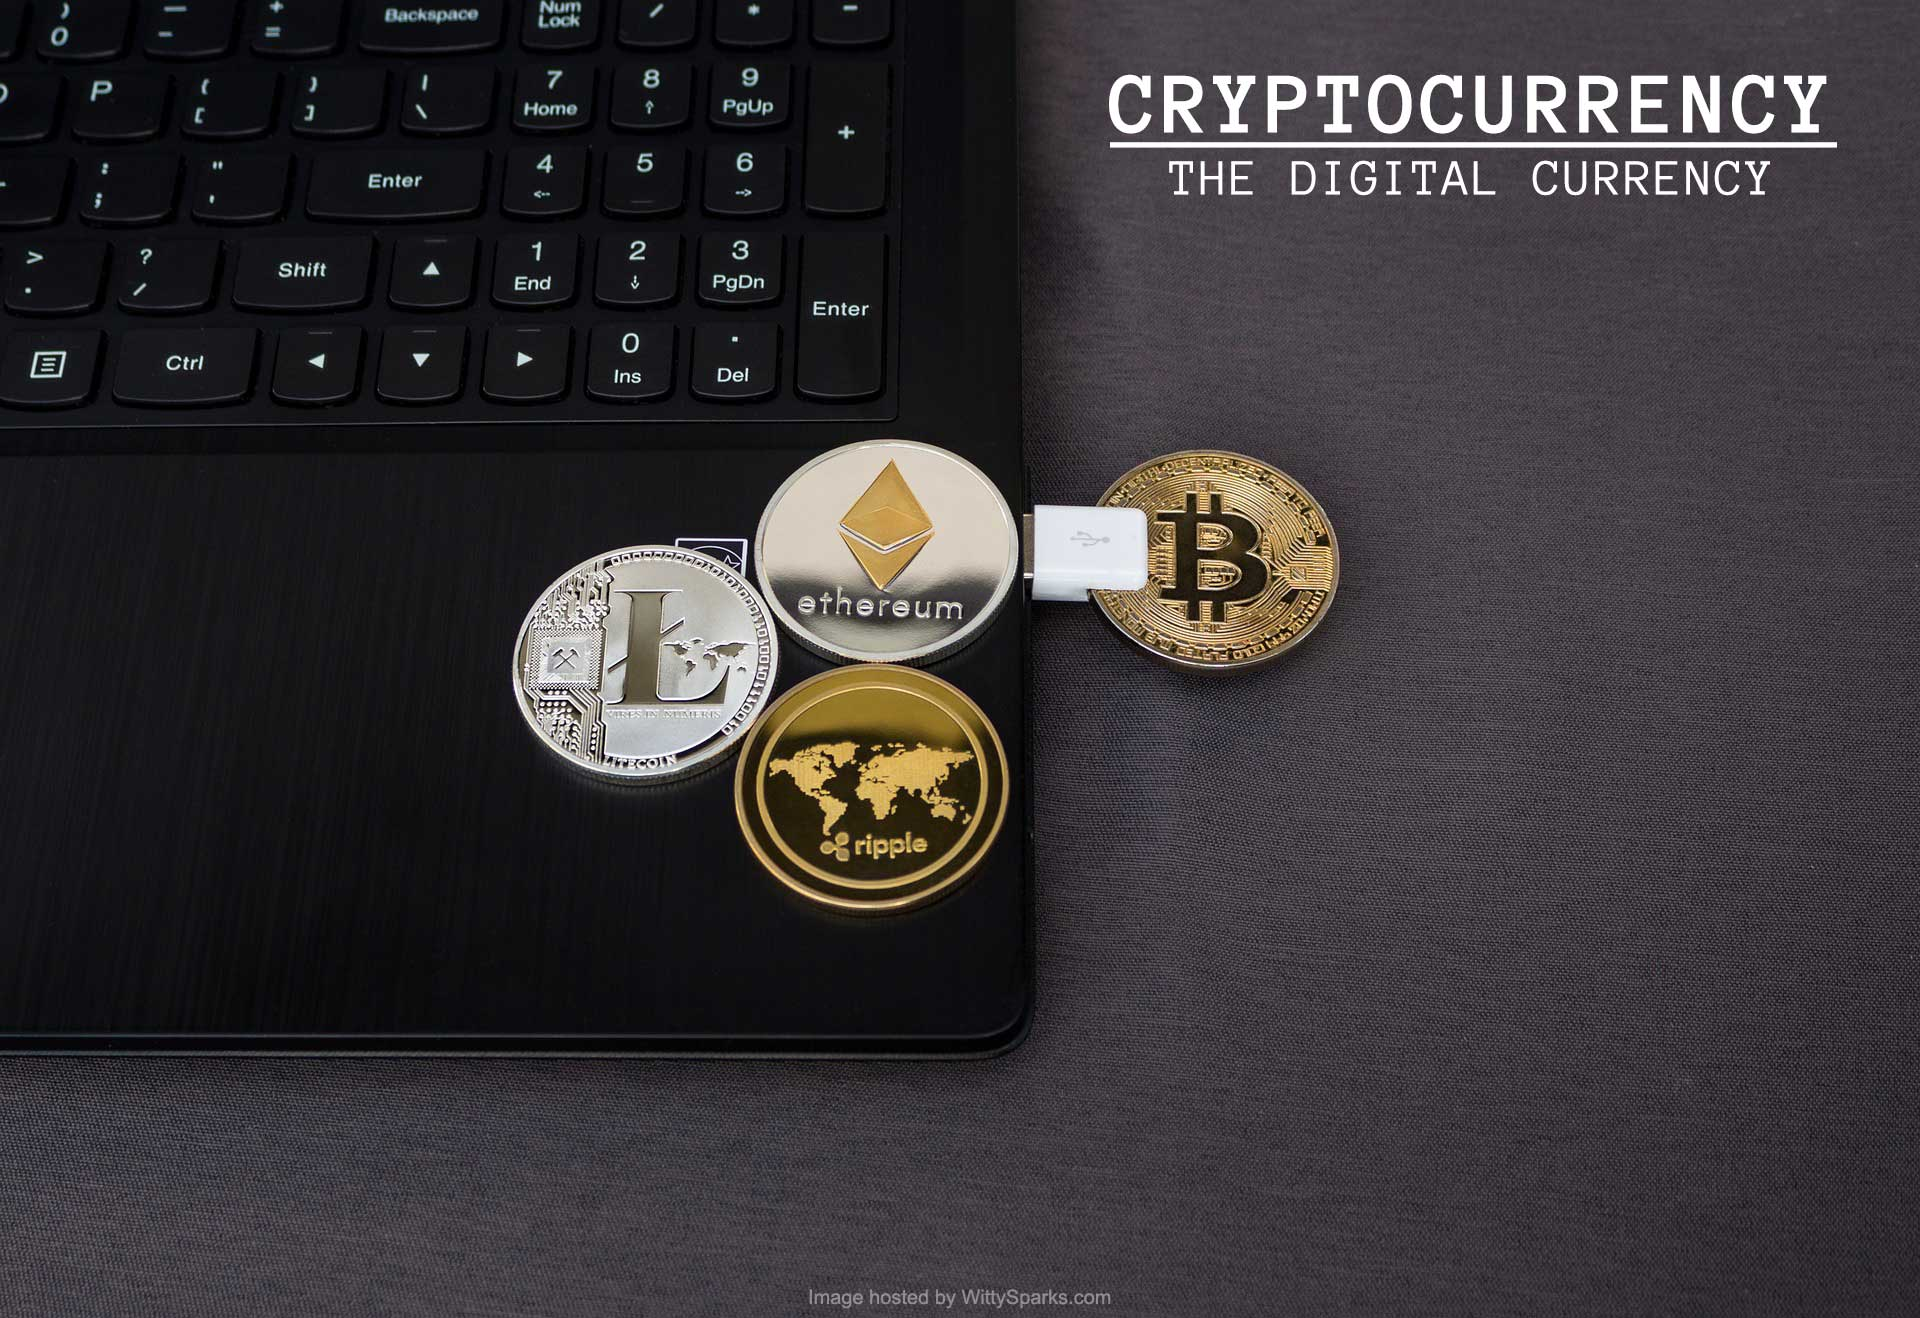 Cryptocurrency - The Digital Currency